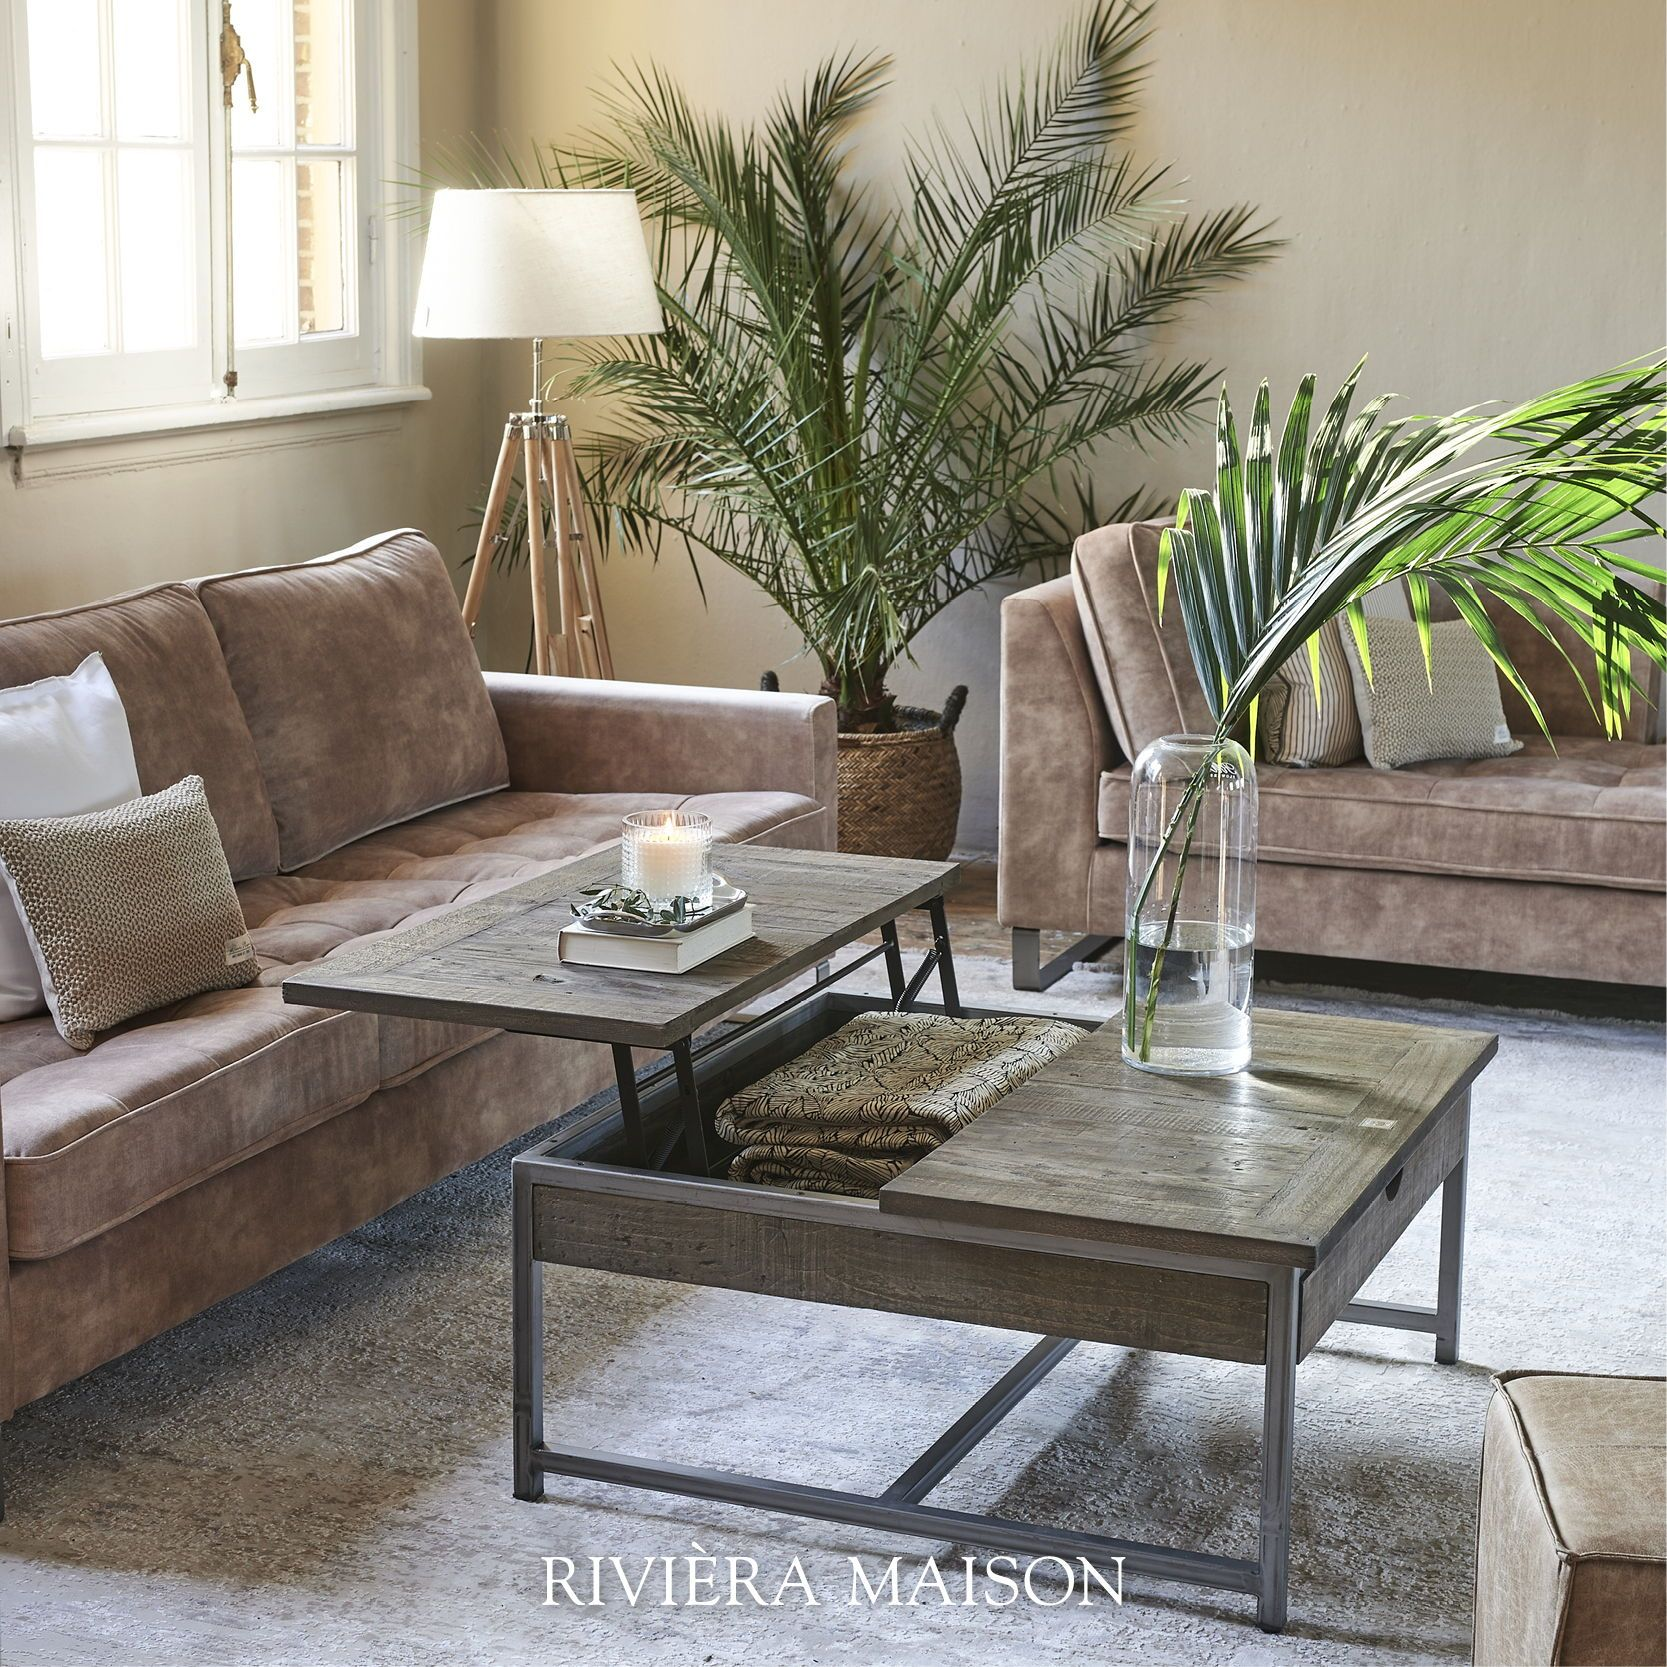 Riviera Maison Leren Bankstel.Riviera Maison Has A Wide Range Of Tables From Dining Tables To